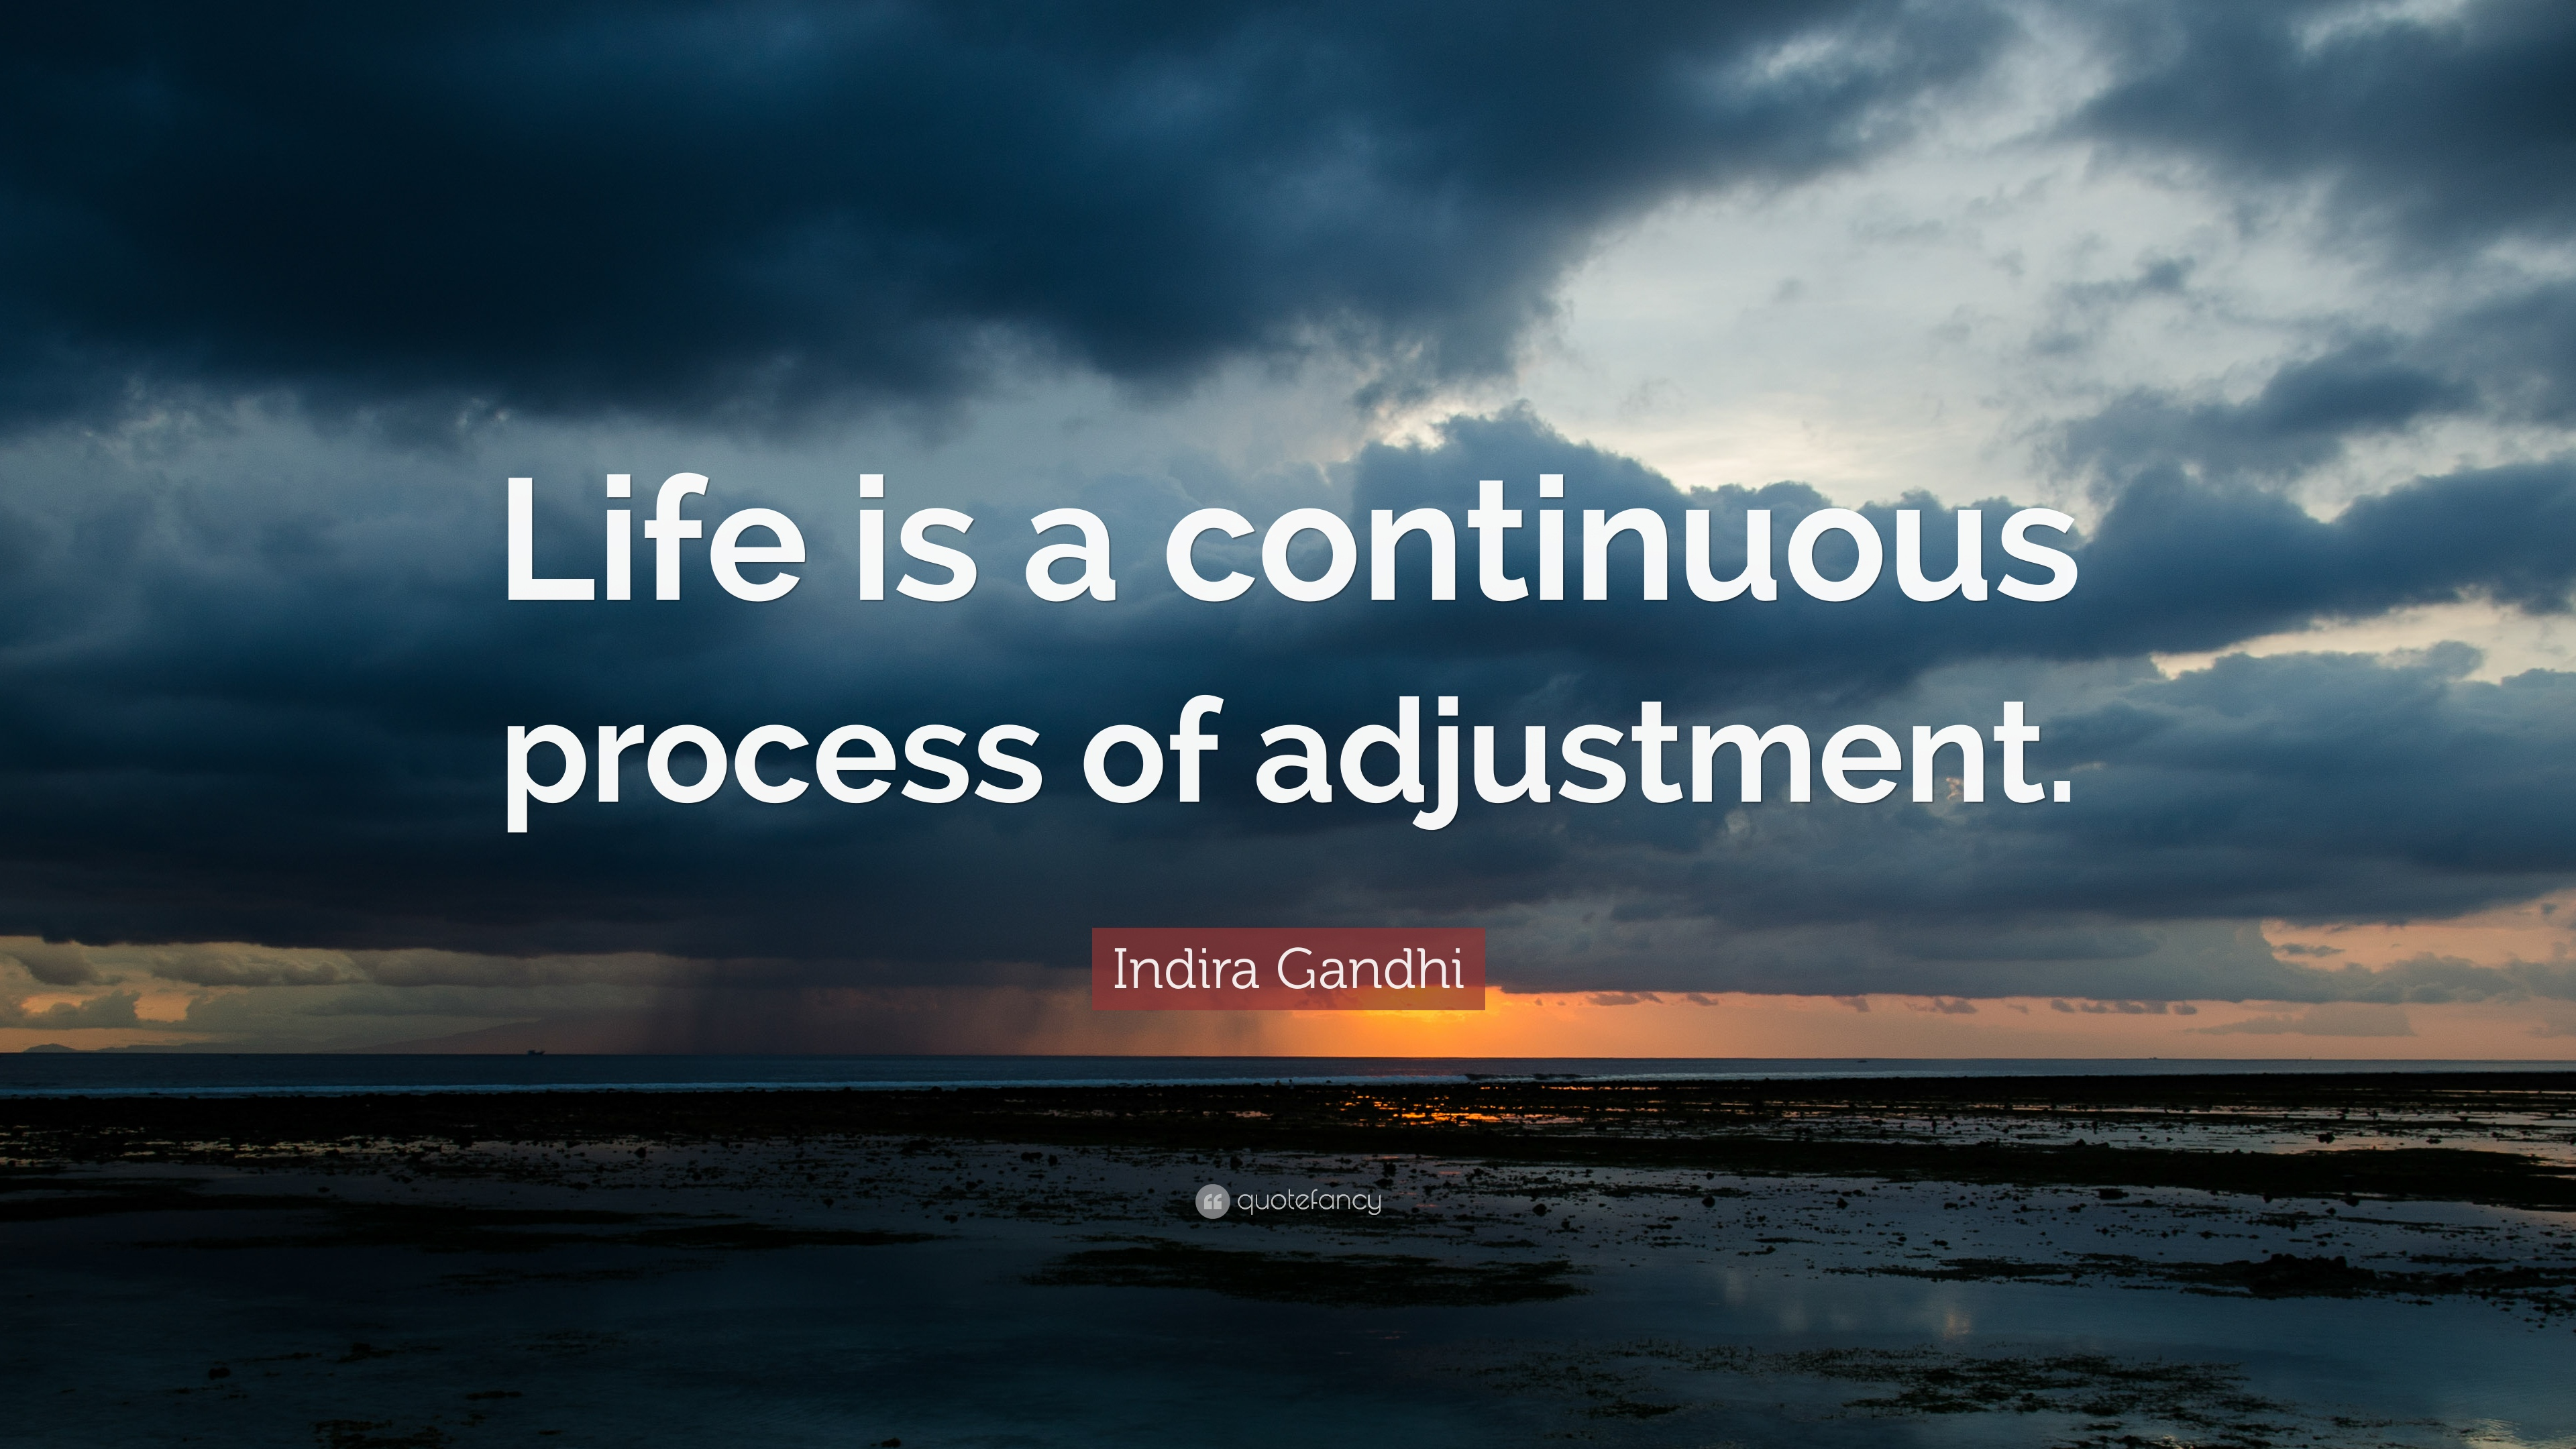 Motivational Quotes For Life Indira Gandhi Quotes 59 Wallpapers  Quotefancy